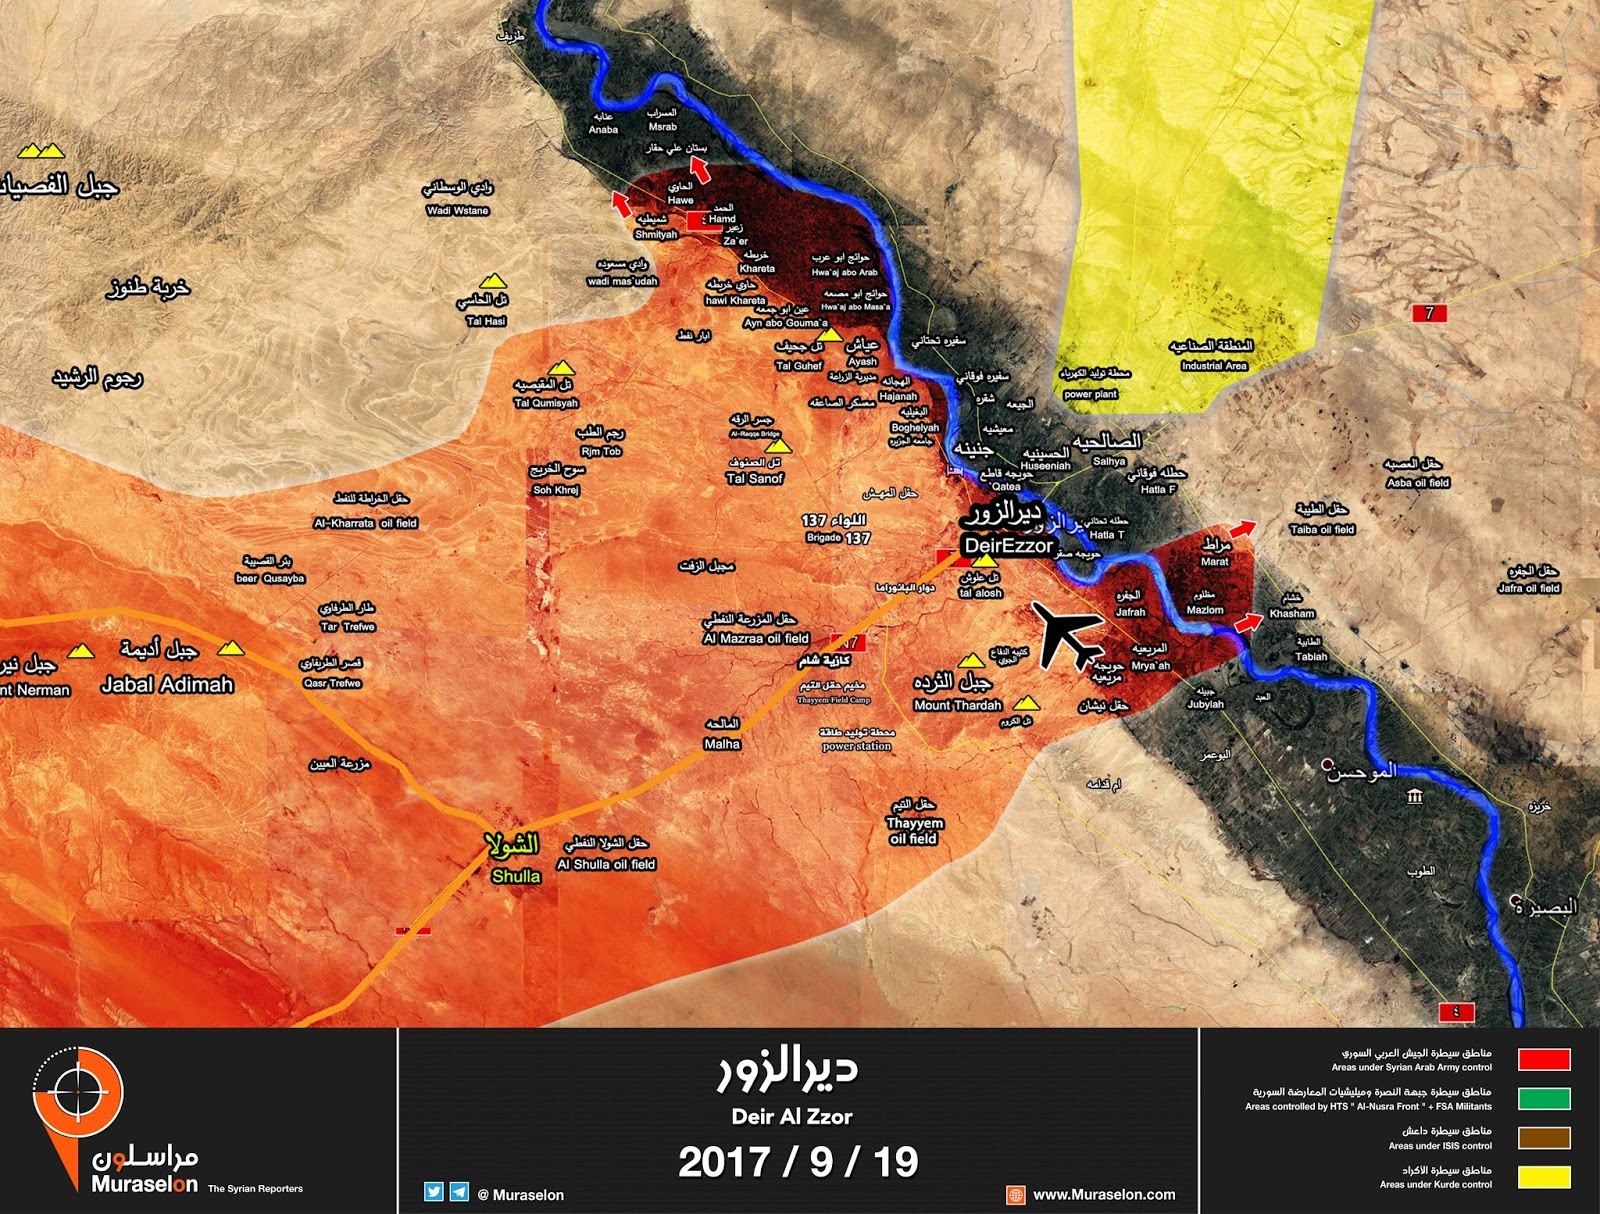 Meanwhile As Seen In The Above Murasalon Map The Syrian Army Are Pushing Their Offensive Against Isis Directly To Oilfields They Control